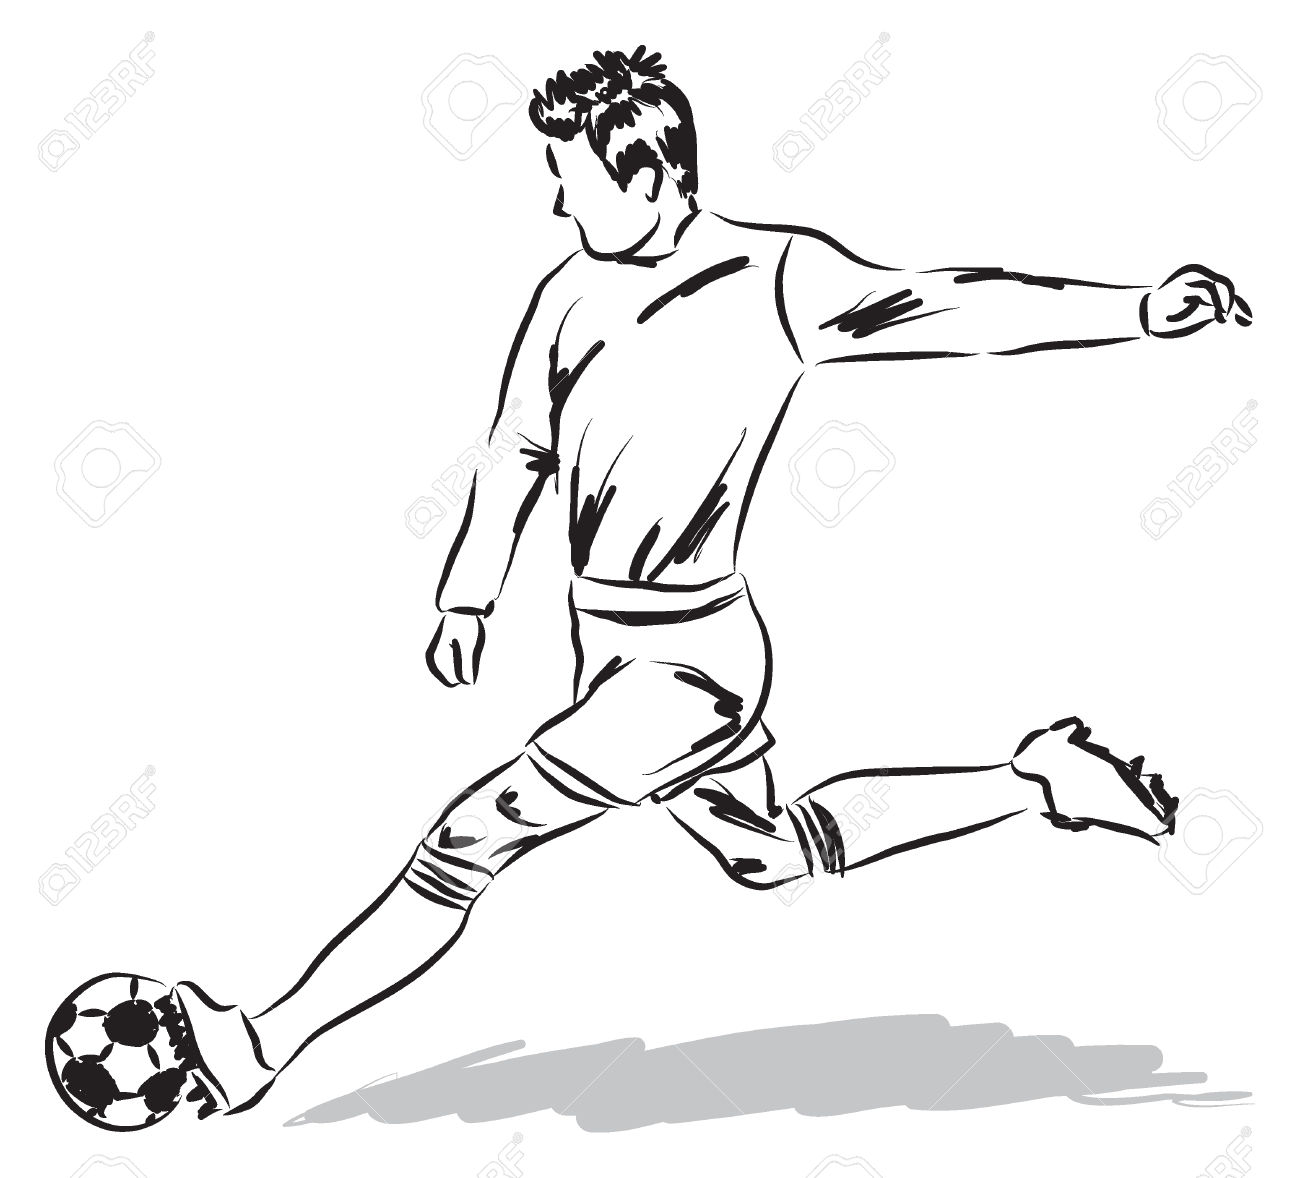 Football Soccer Player Illustration Royalty Free Cliparts, Vectors.